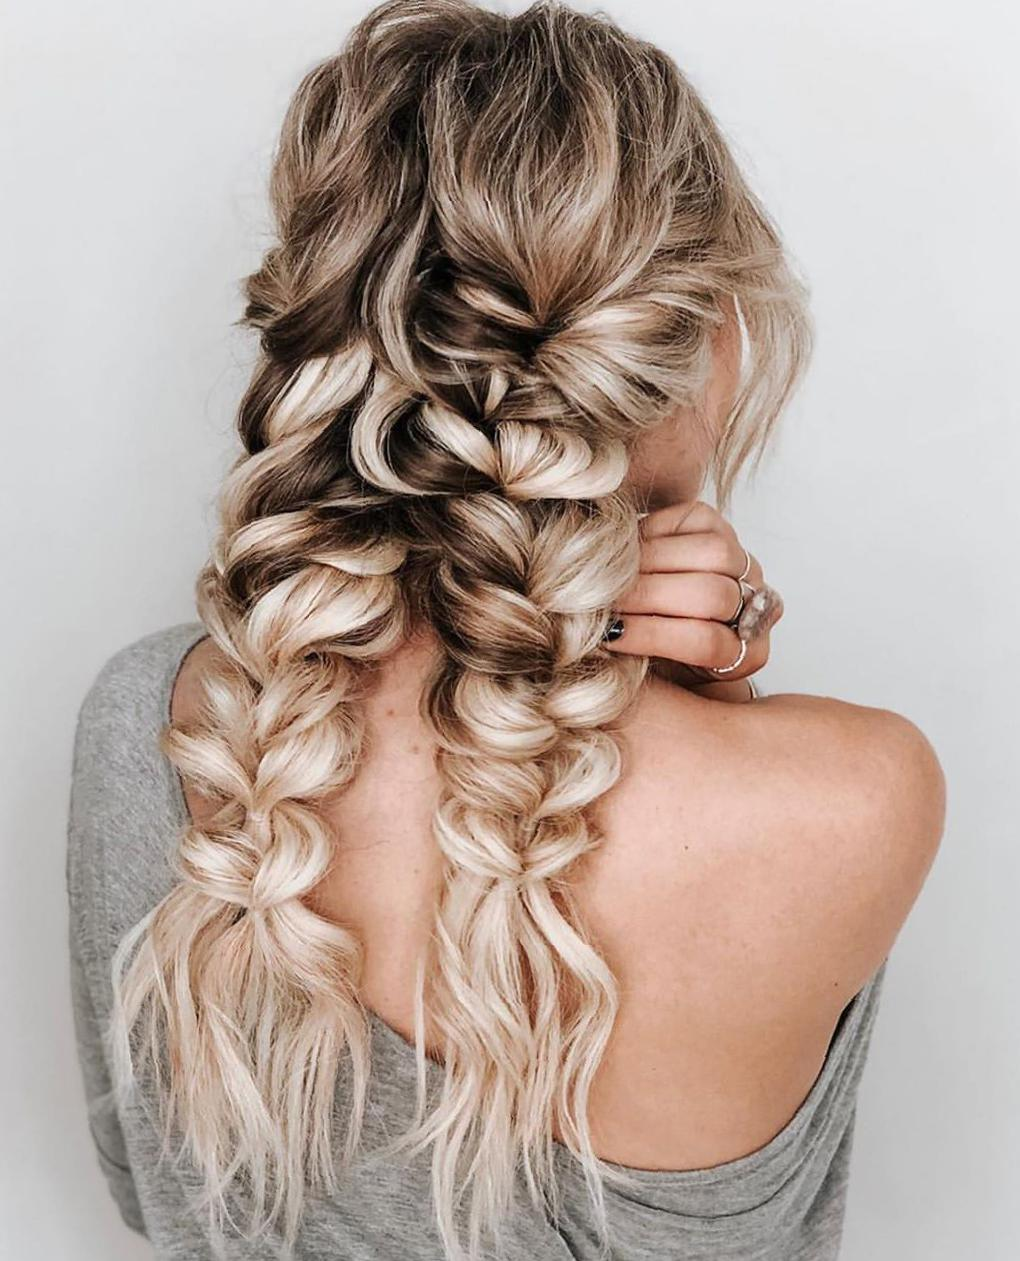 50 Trendy Double Braid Hairstyle Ideas To Keep You Cool Molitsy Blog